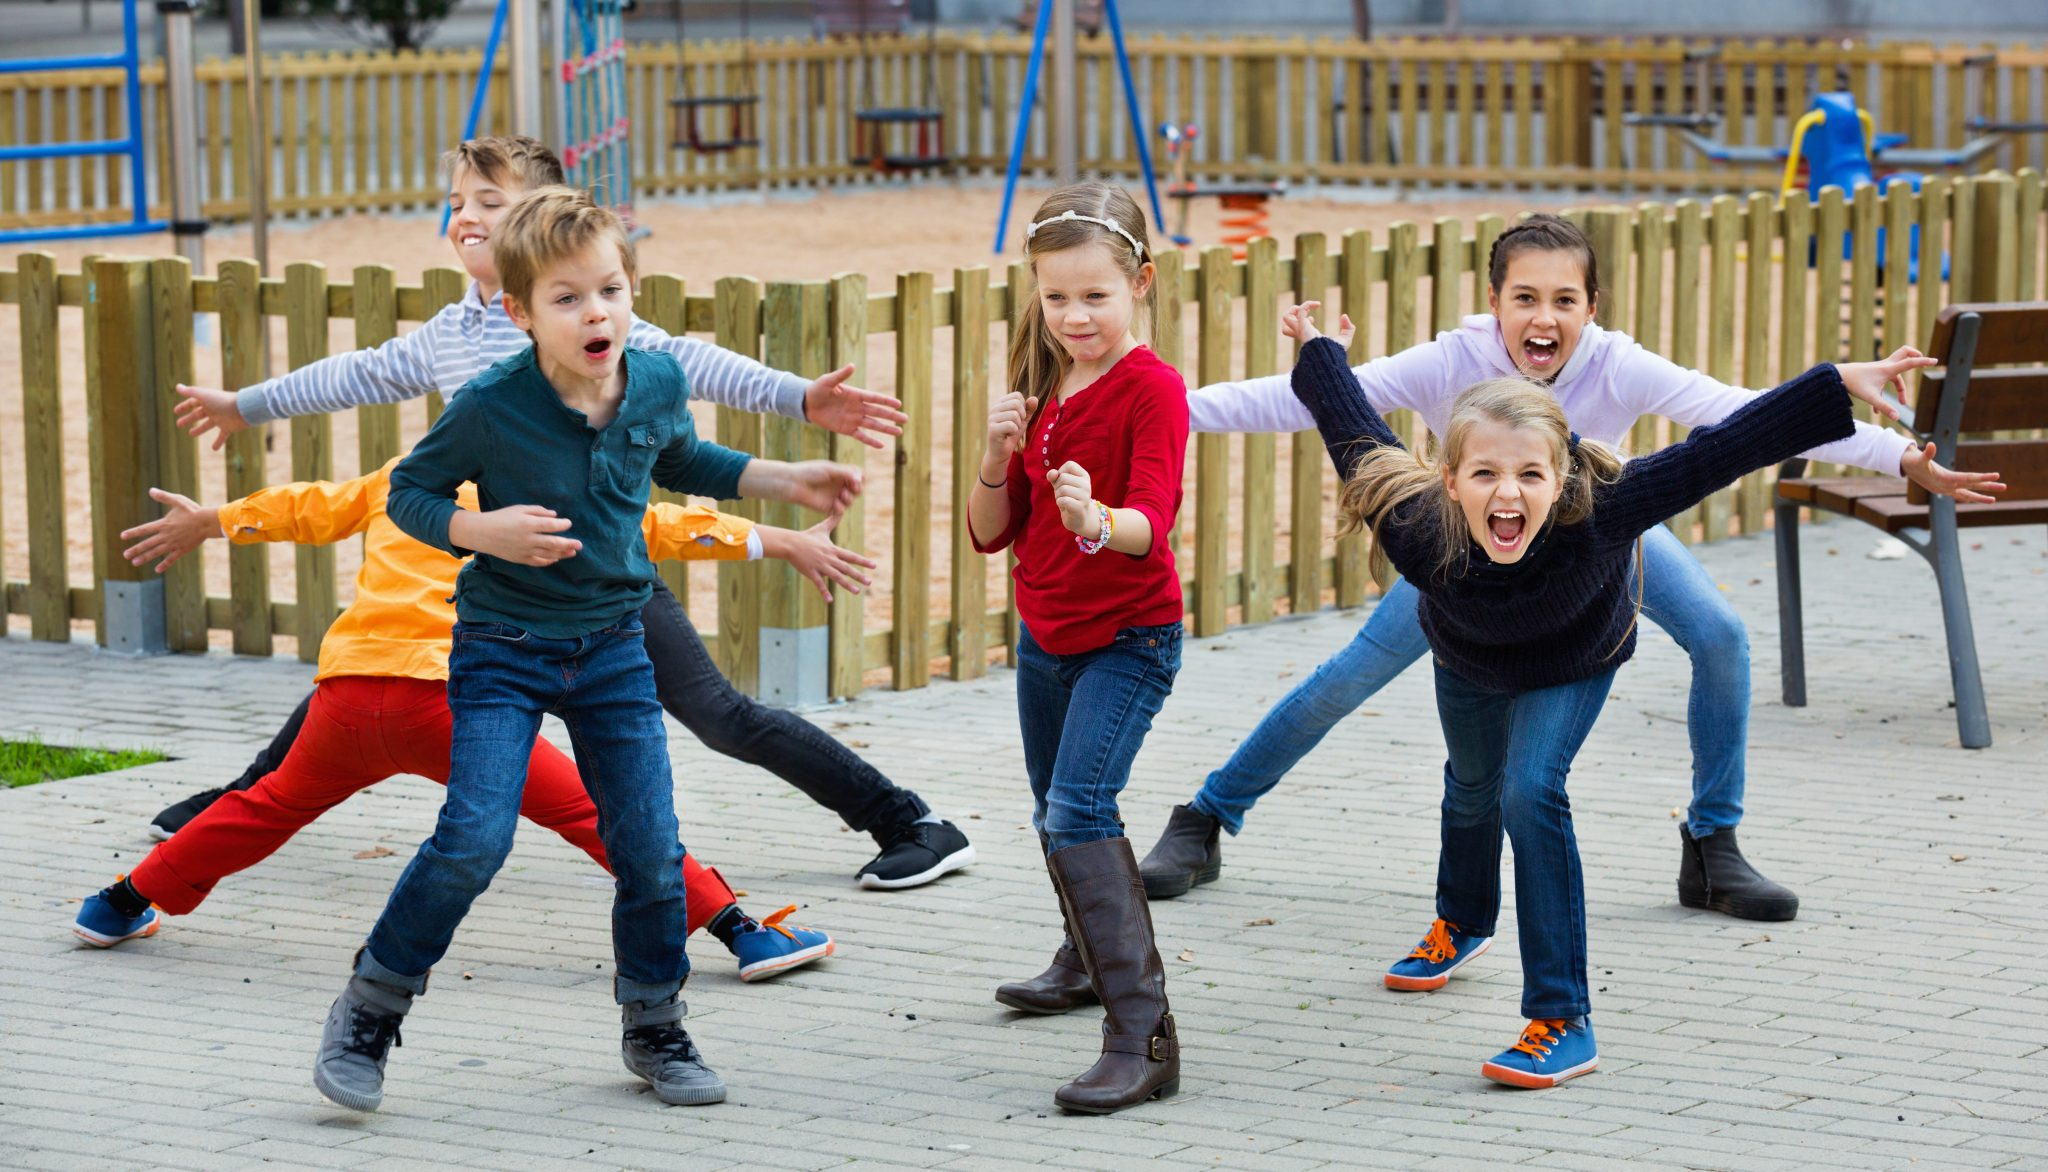 Acting game with cheerful children making performance outdoor in autumn